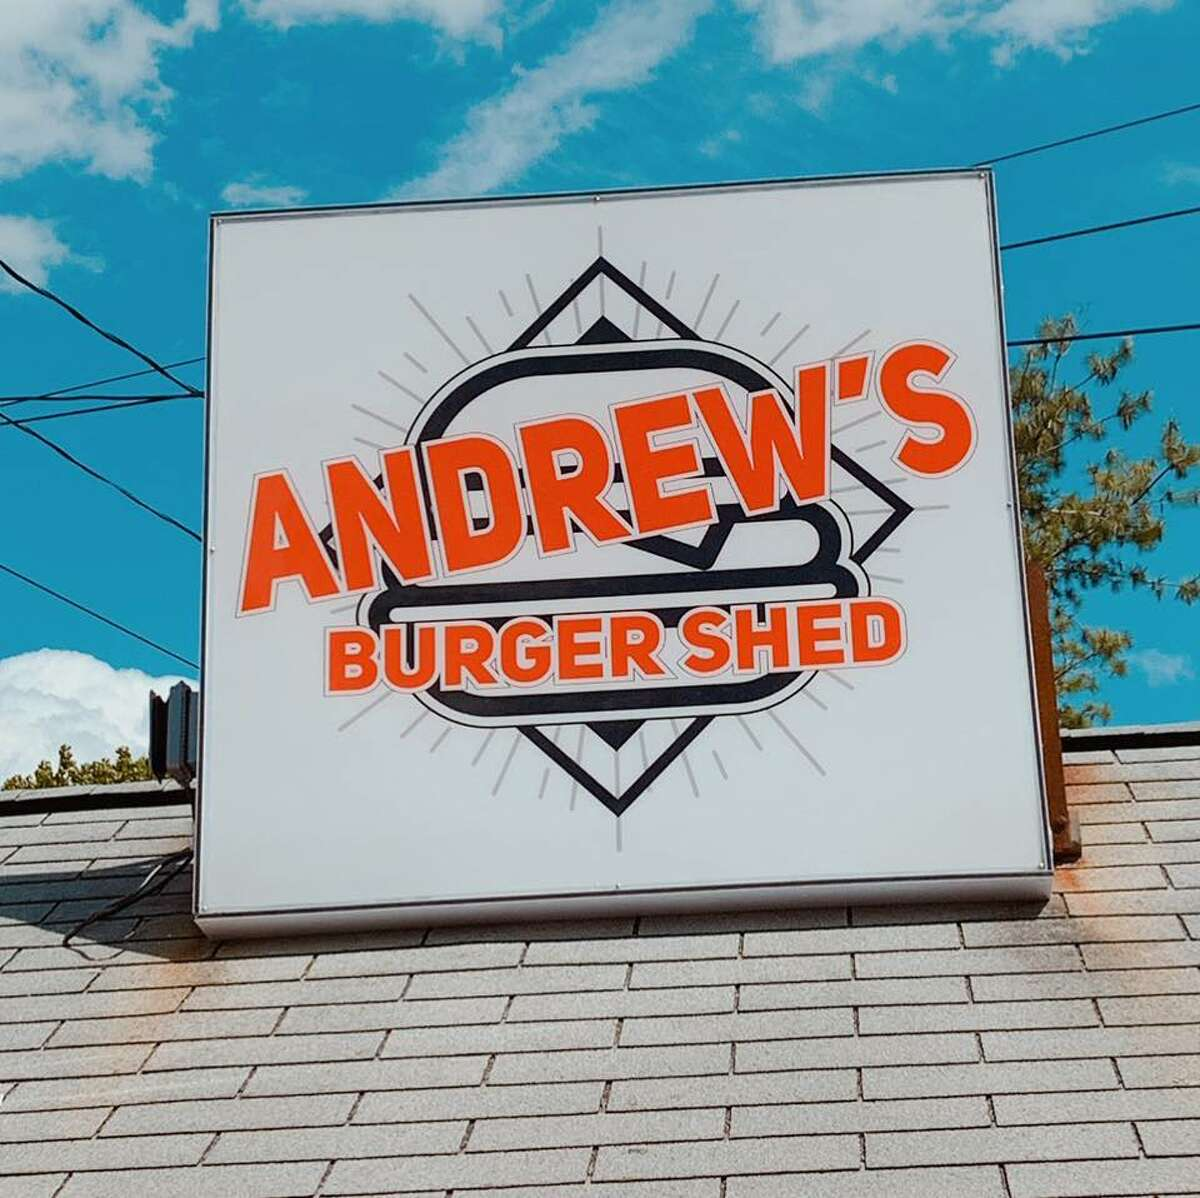 Andrew's Burger Shed has replaced Ross's Ice Cream & Hamburger Stand in Slingerlands. Keep clicking for more restaurants that are gone but not forgotten in the Capital Region.